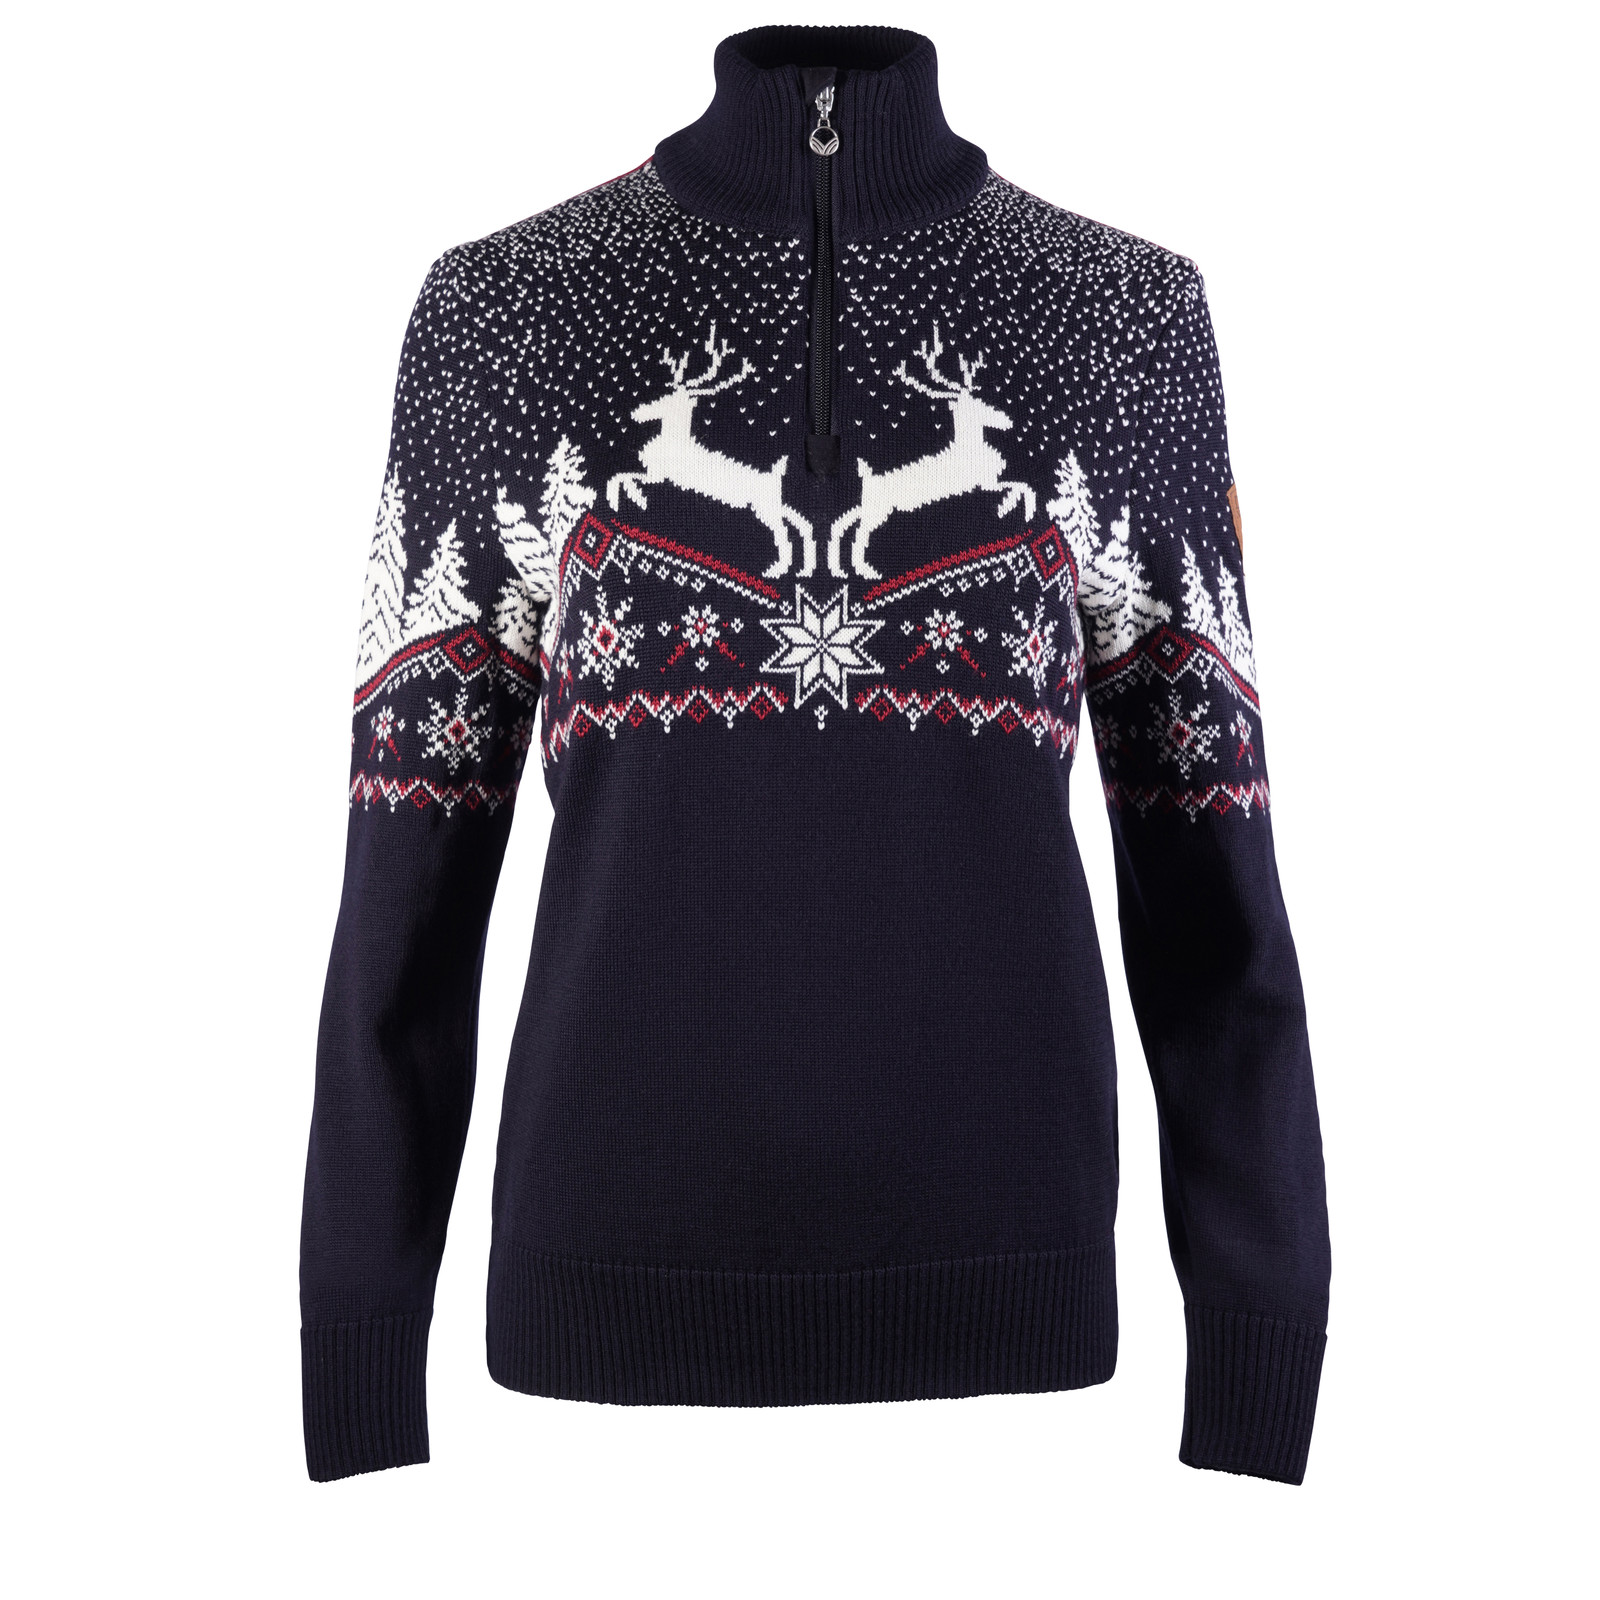 Dale of Norway Dale Christmas Sweater, Ladies - Navy/Off White/Red Rose, 93921-C